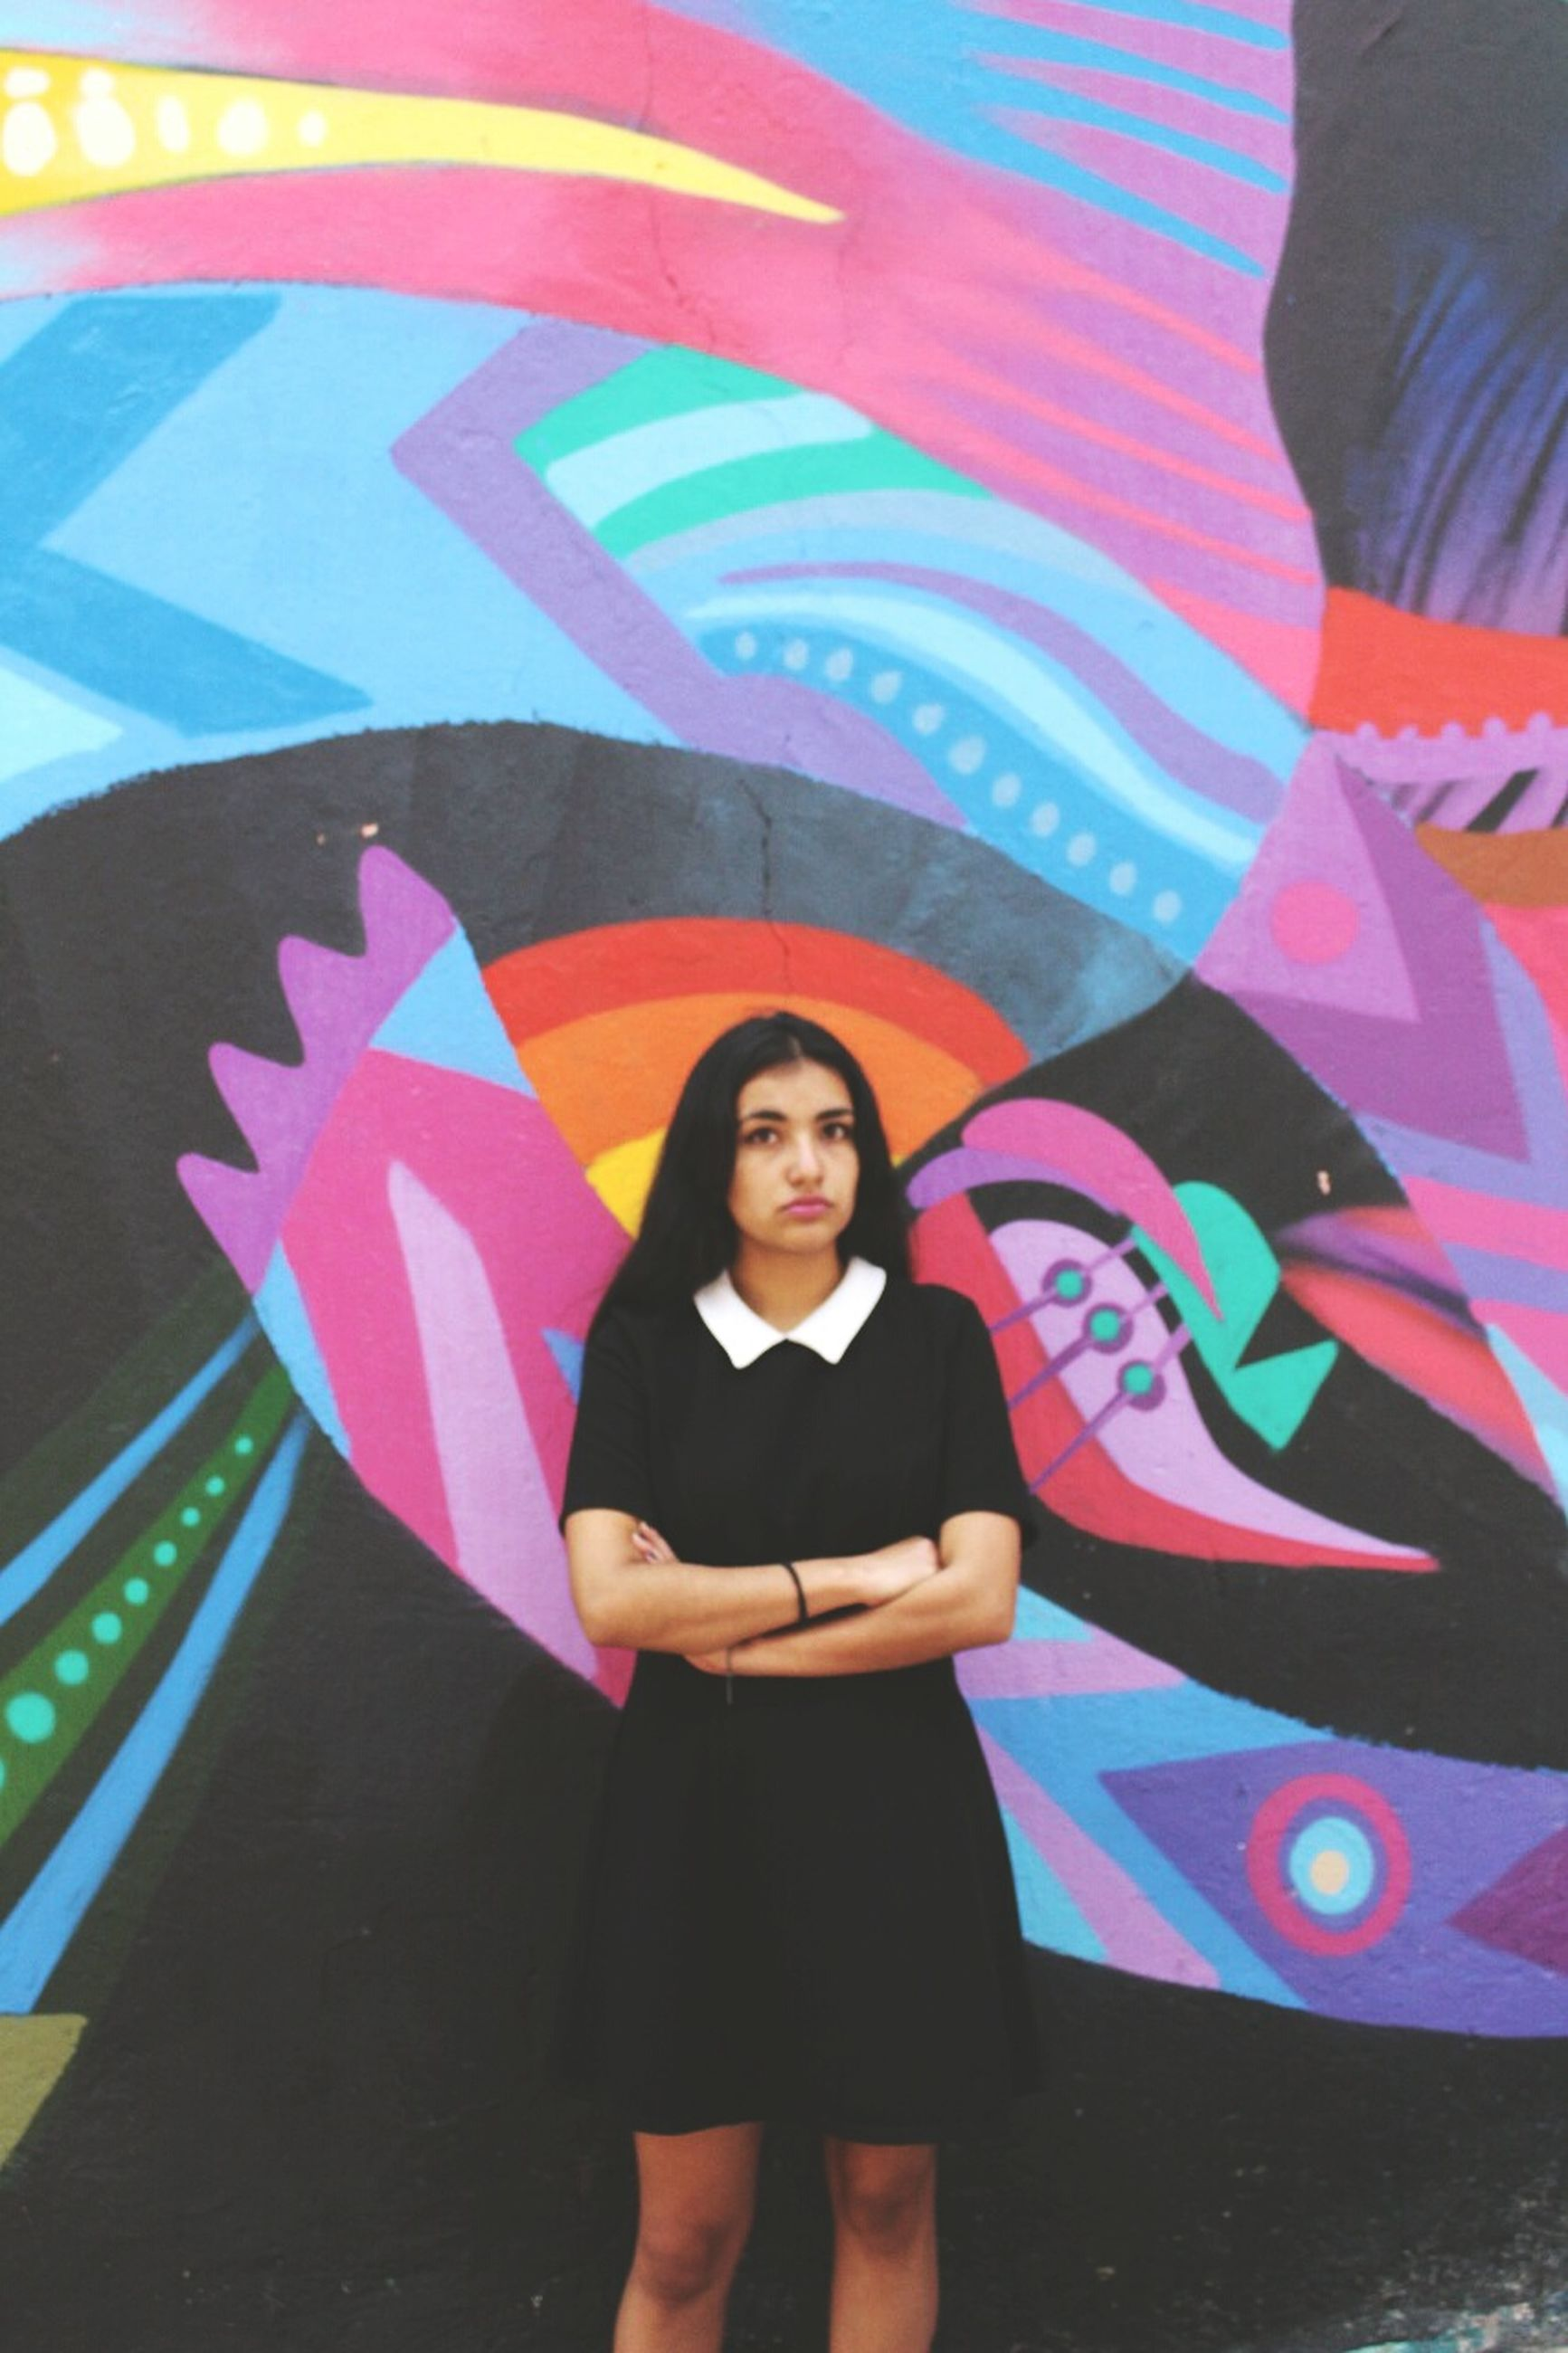 multi colored, one person, young adult, real people, front view, looking at camera, standing, graffiti, lifestyles, young women, beautiful woman, portrait, leisure activity, casual clothing, happiness, posing, outdoors, smiling, day, full length, people